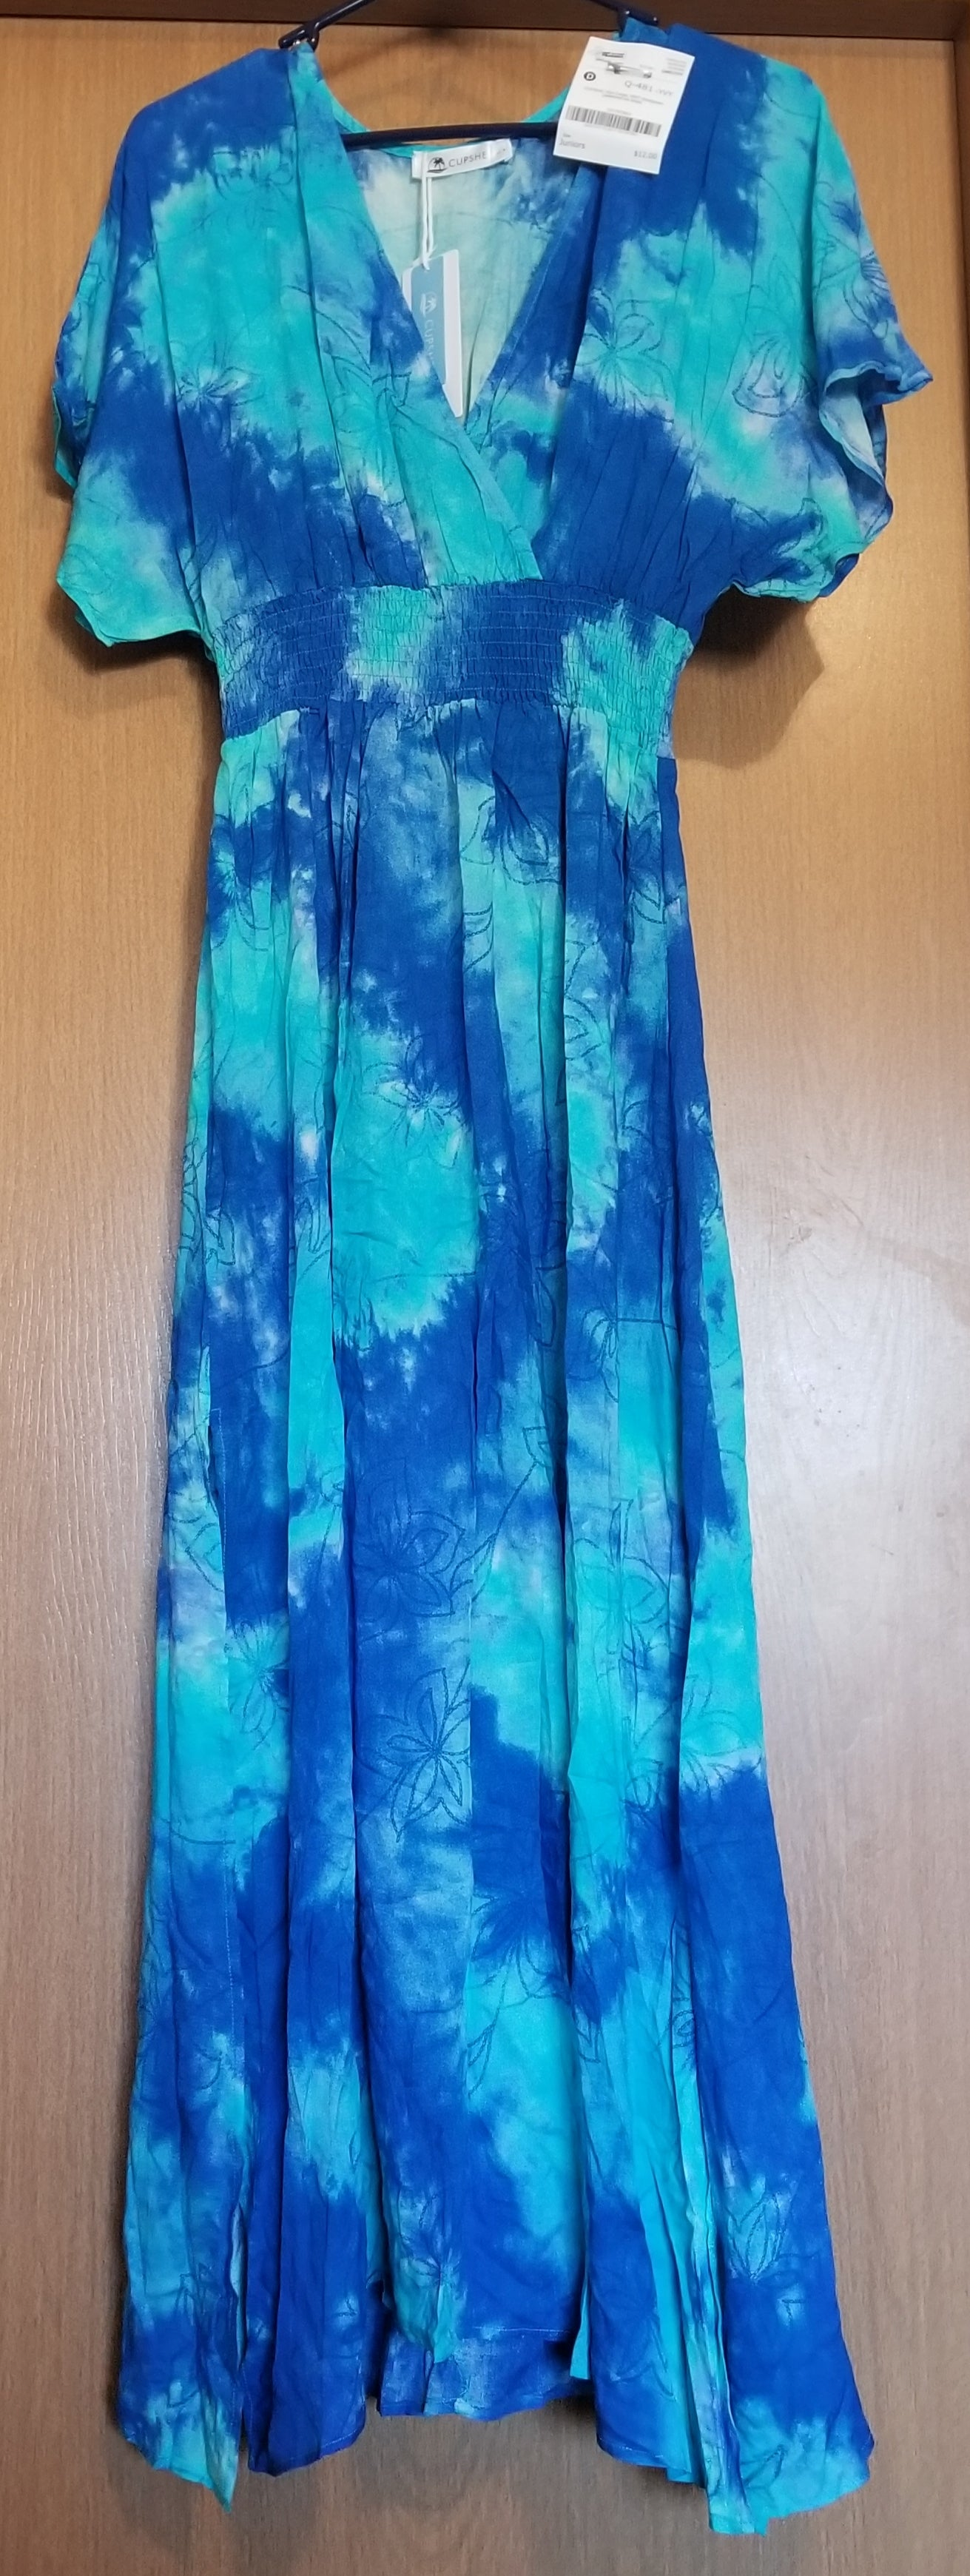 CUPSHE NEW WITH TAGS SZ LARGE juniors blue/green patterned short sleeve dress, long